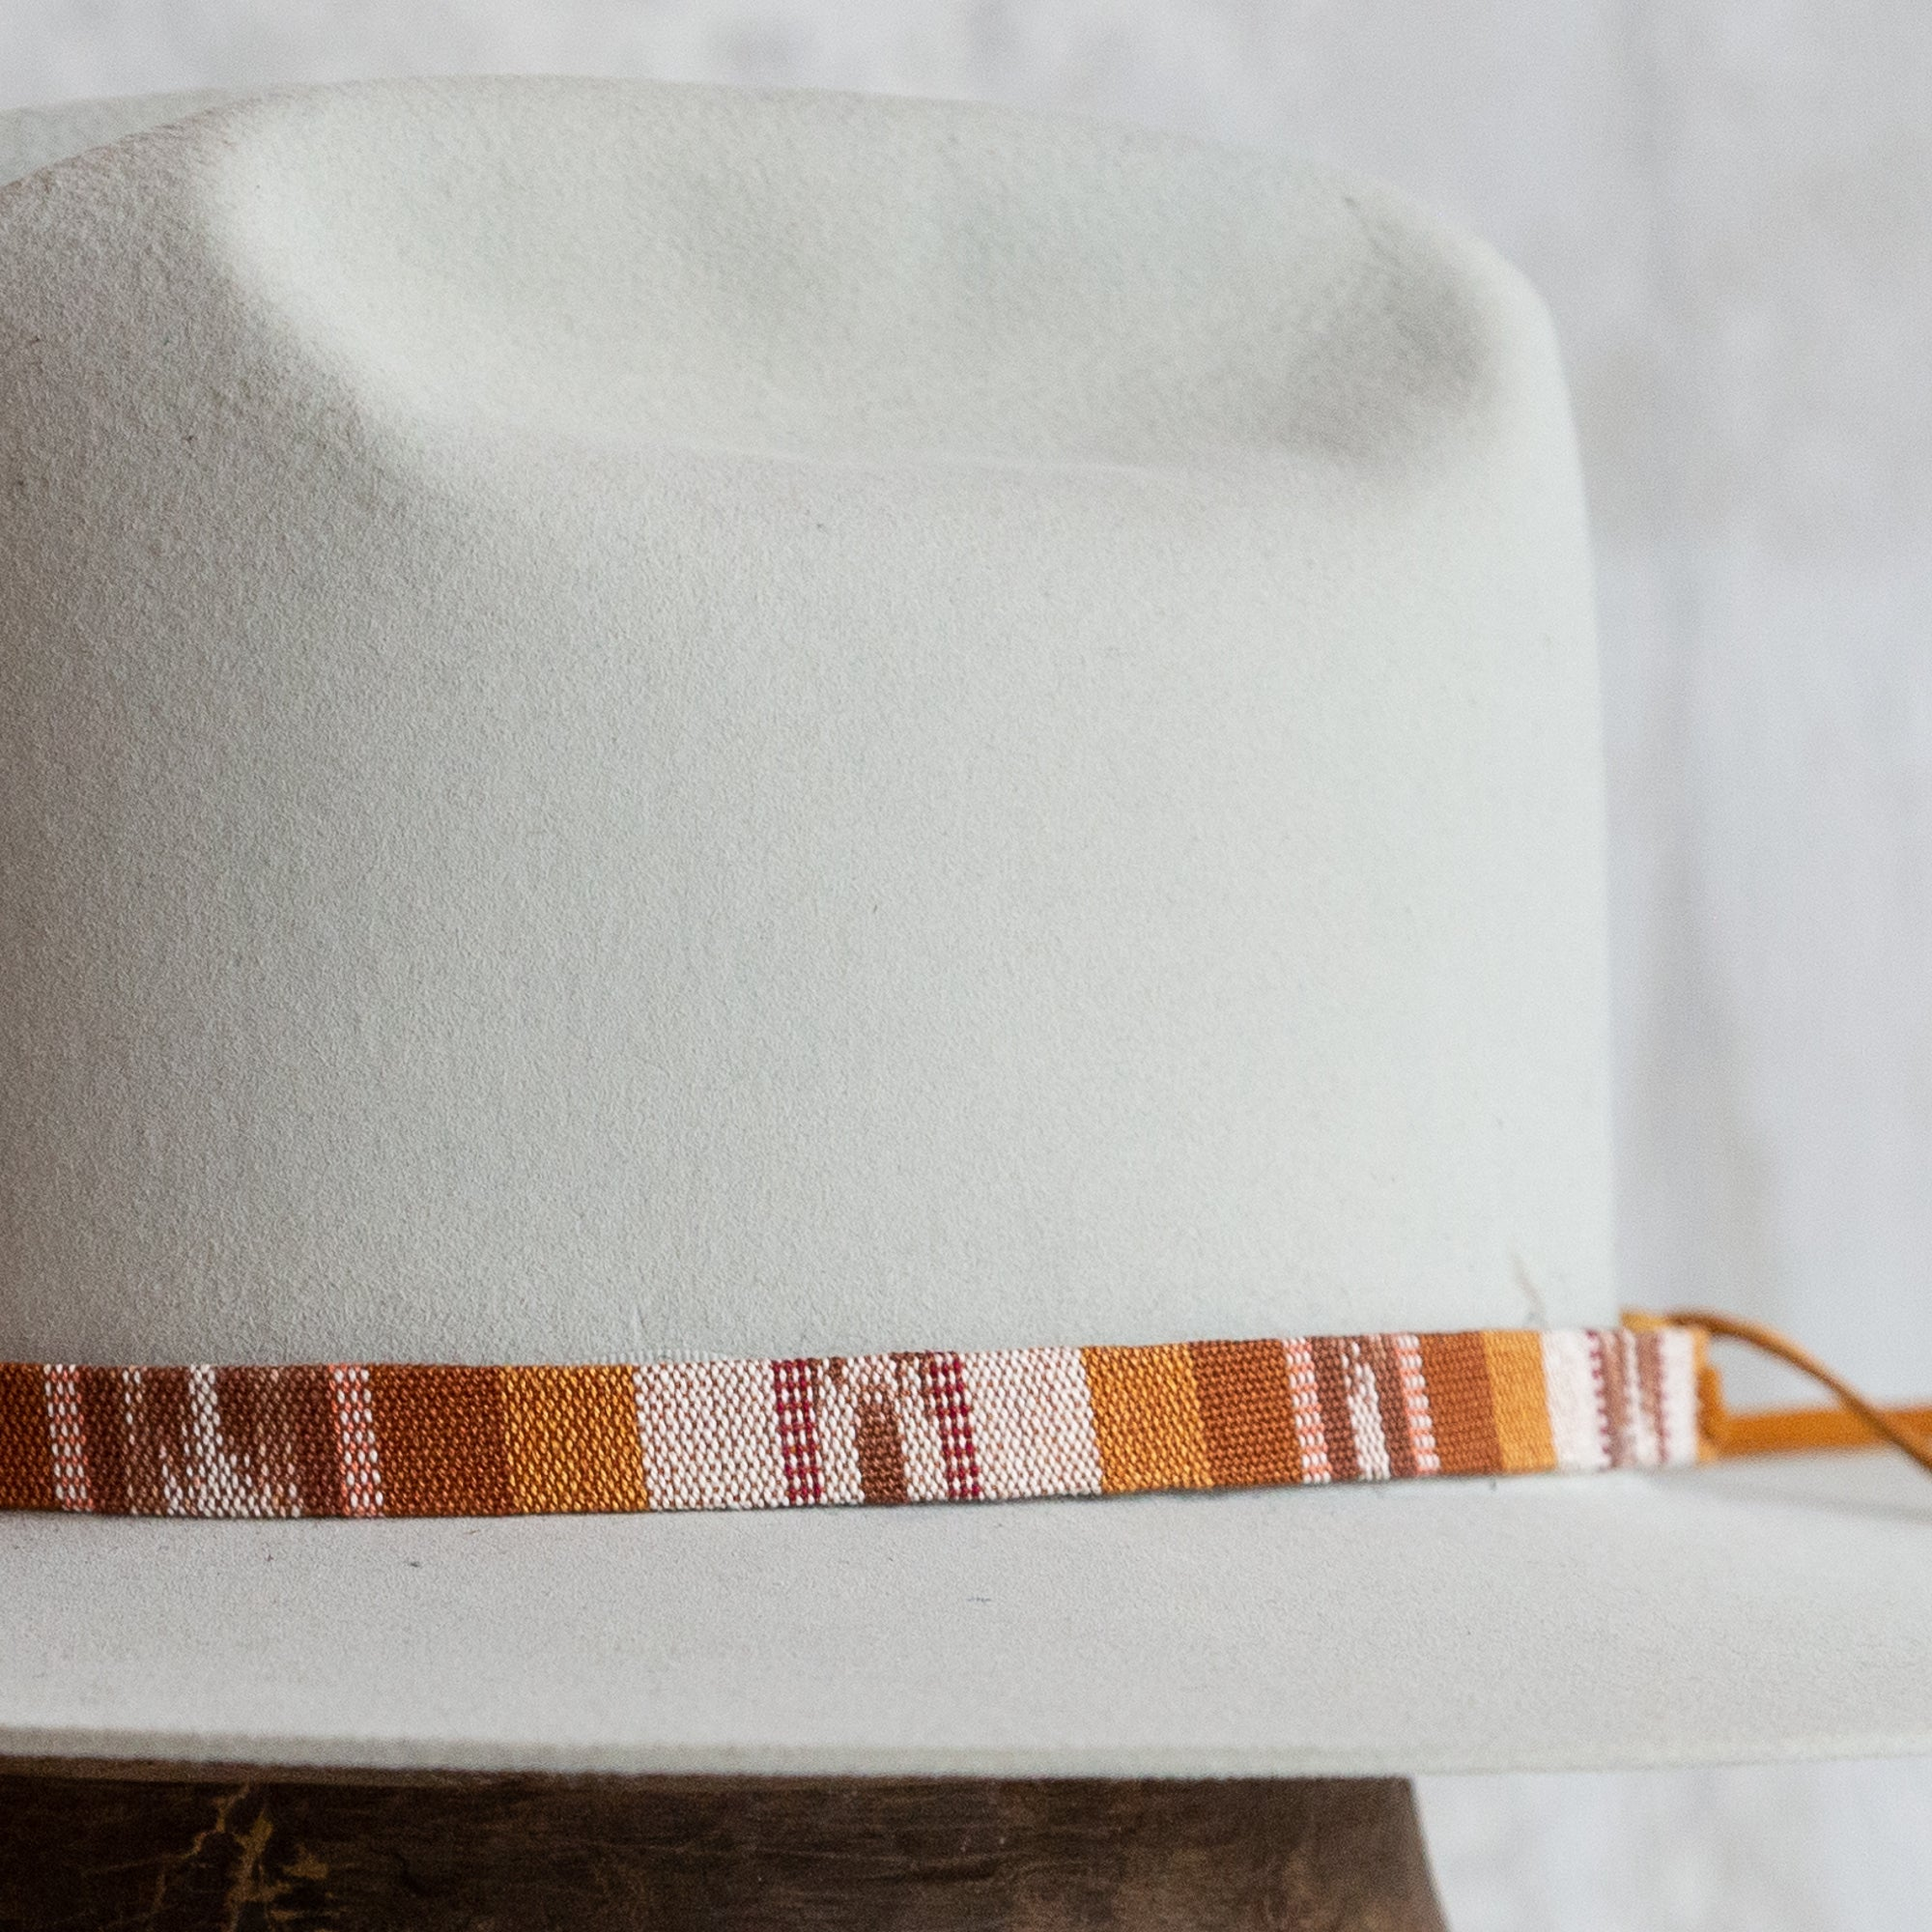 Tapestry Tie Hat Band - Rust Desert Sand